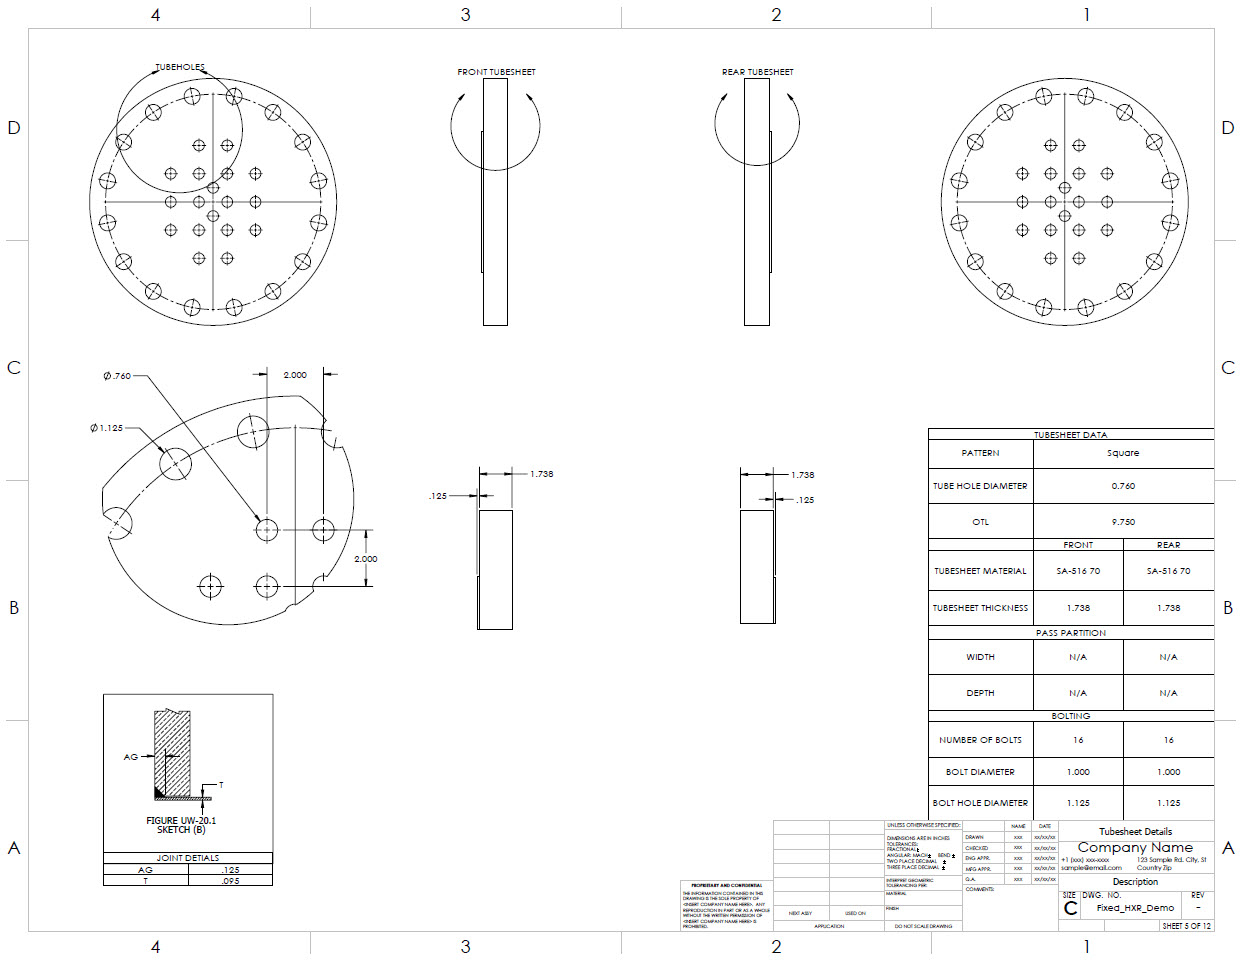 Tubesheet detail drawings are generated by the Codeware Interface. Including a block library for UHX Figures UW20.1 and 11.3-1 Tube-To-Tubesheet Joints.